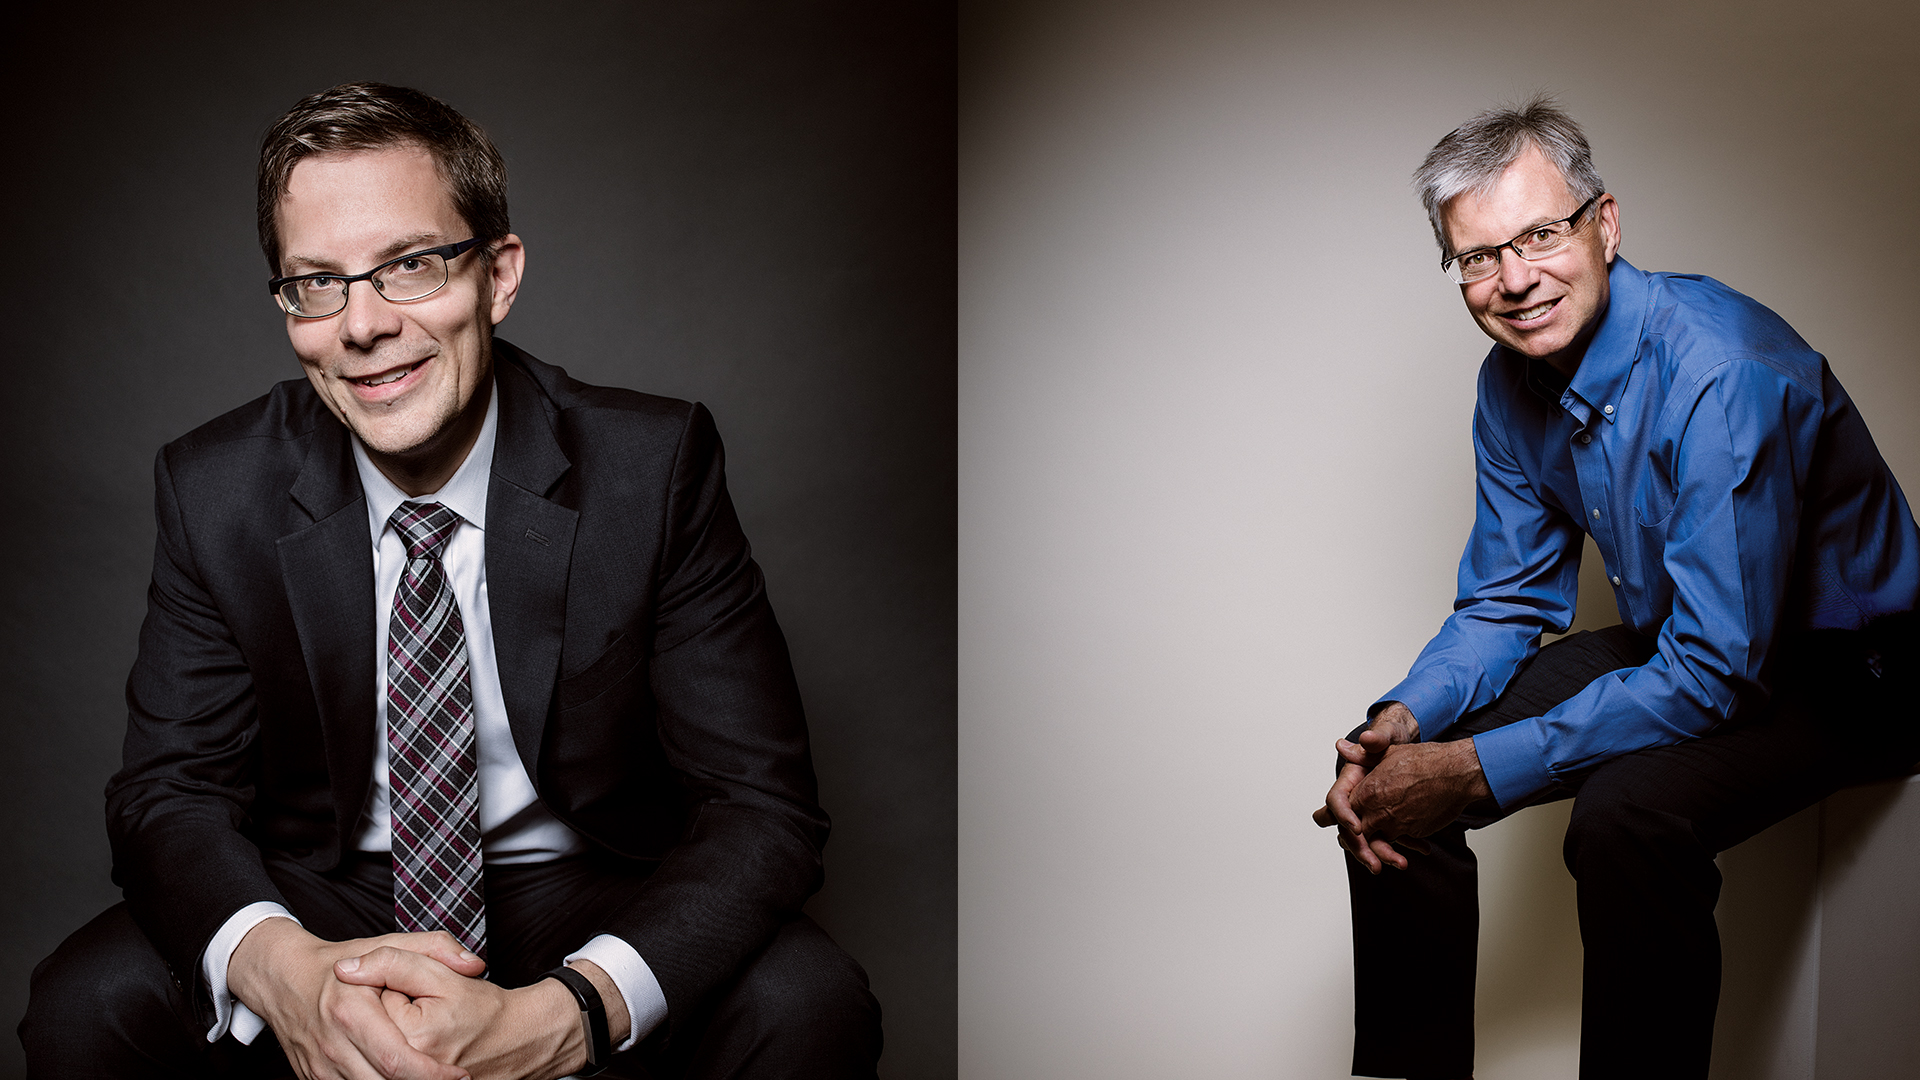 Dr. Eric Smith (l), Dr. Marc Poulin (r) - Photos by Jared Sych